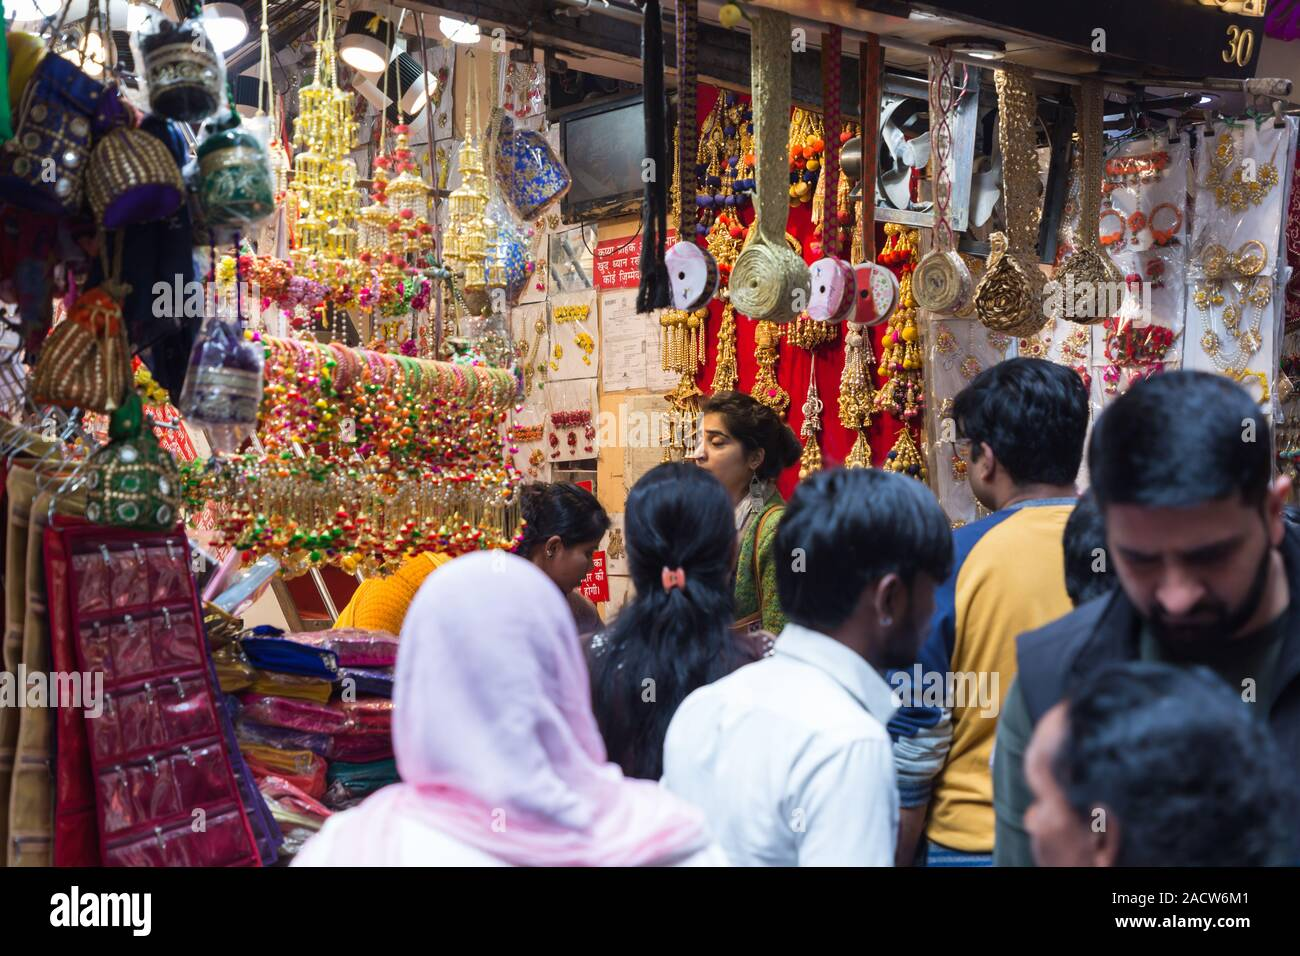 Donna shopping a Chandni Chowk Shop nella Vecchia Delhi India Foto Stock